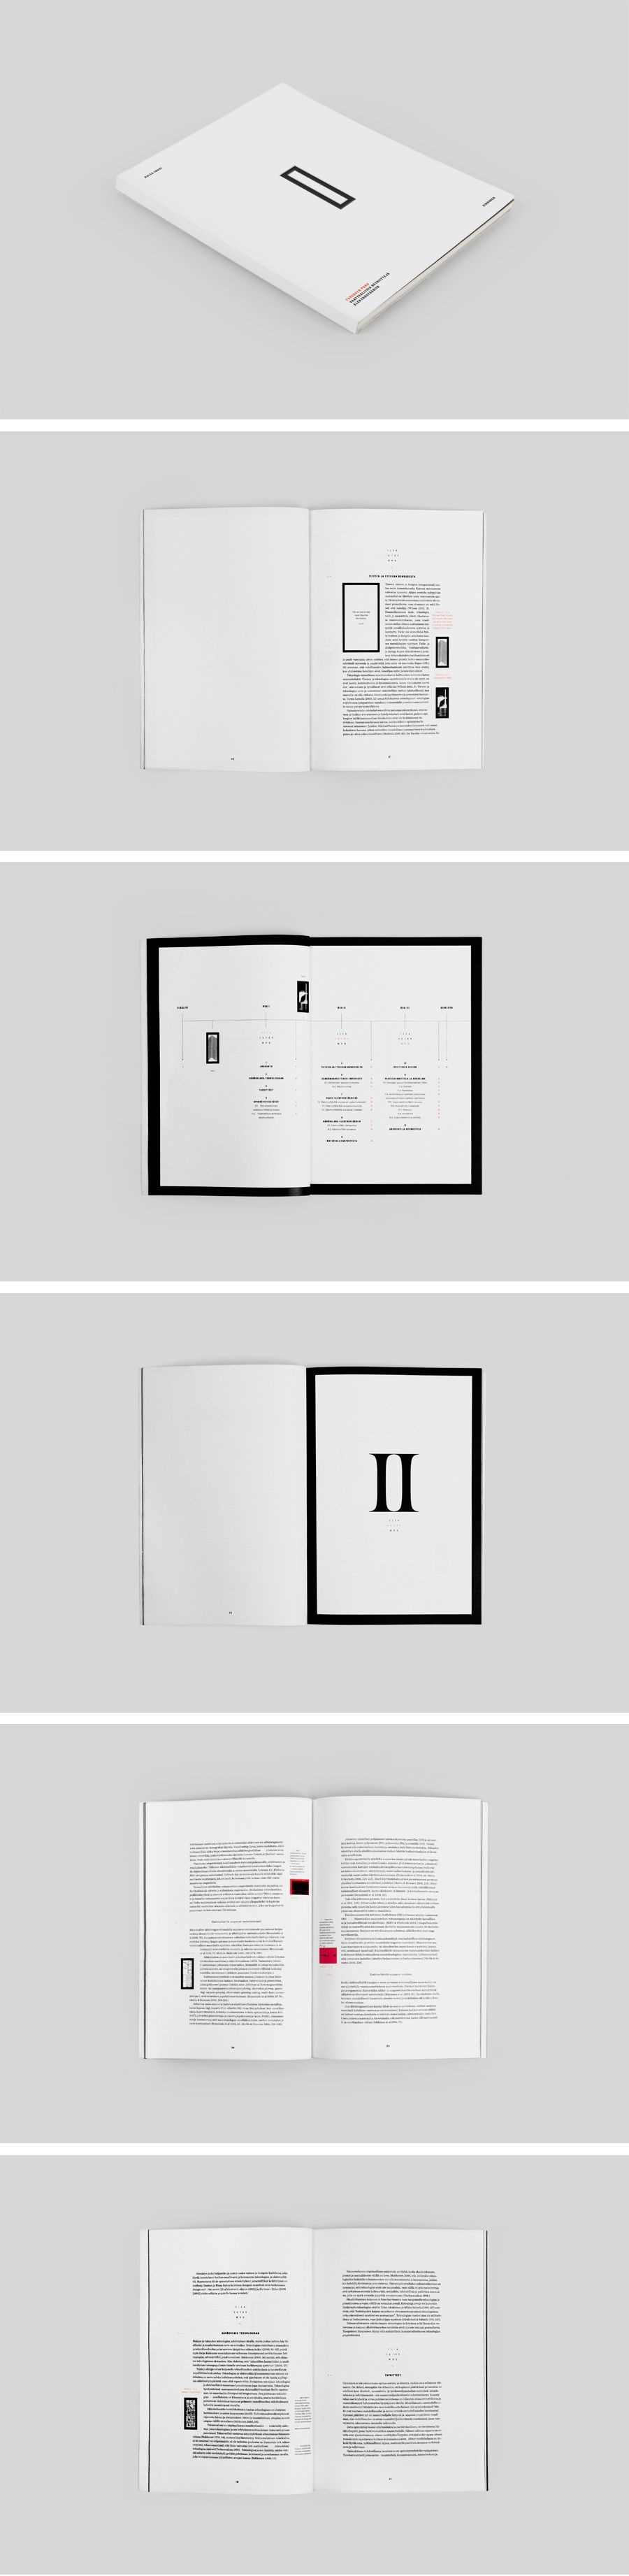 Design a professional book layout | White image, Roman and Bald ...